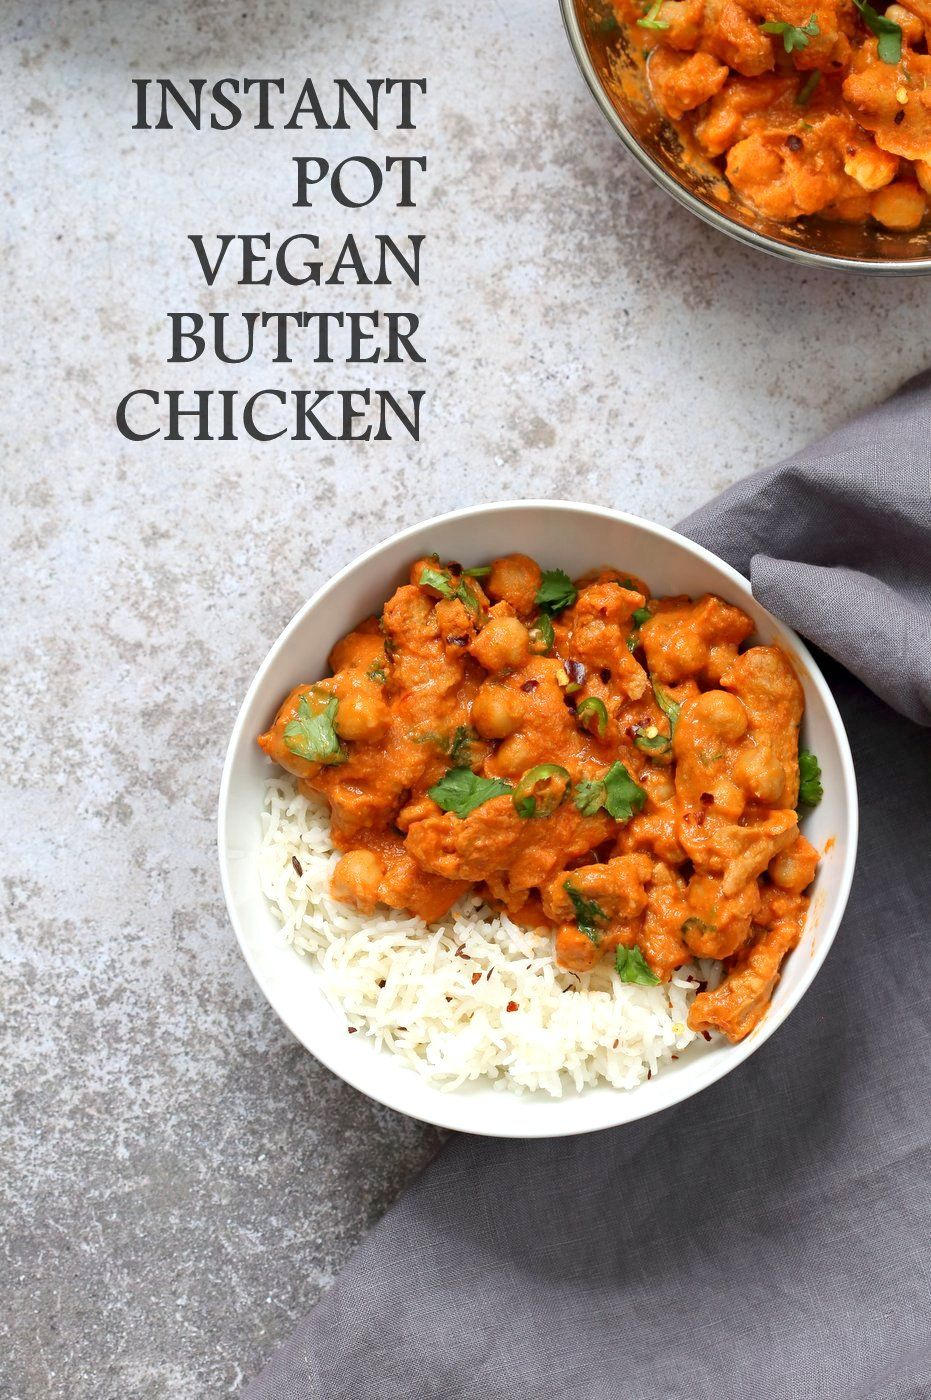 Instant Pot Vegan Butter Chicken With Soy Curls Chickpeas Oil Free Gf Vegan Richa Recipe Vegan Butter Chicken Vegan Instant Pot Recipes Vegetarian Instant Pot